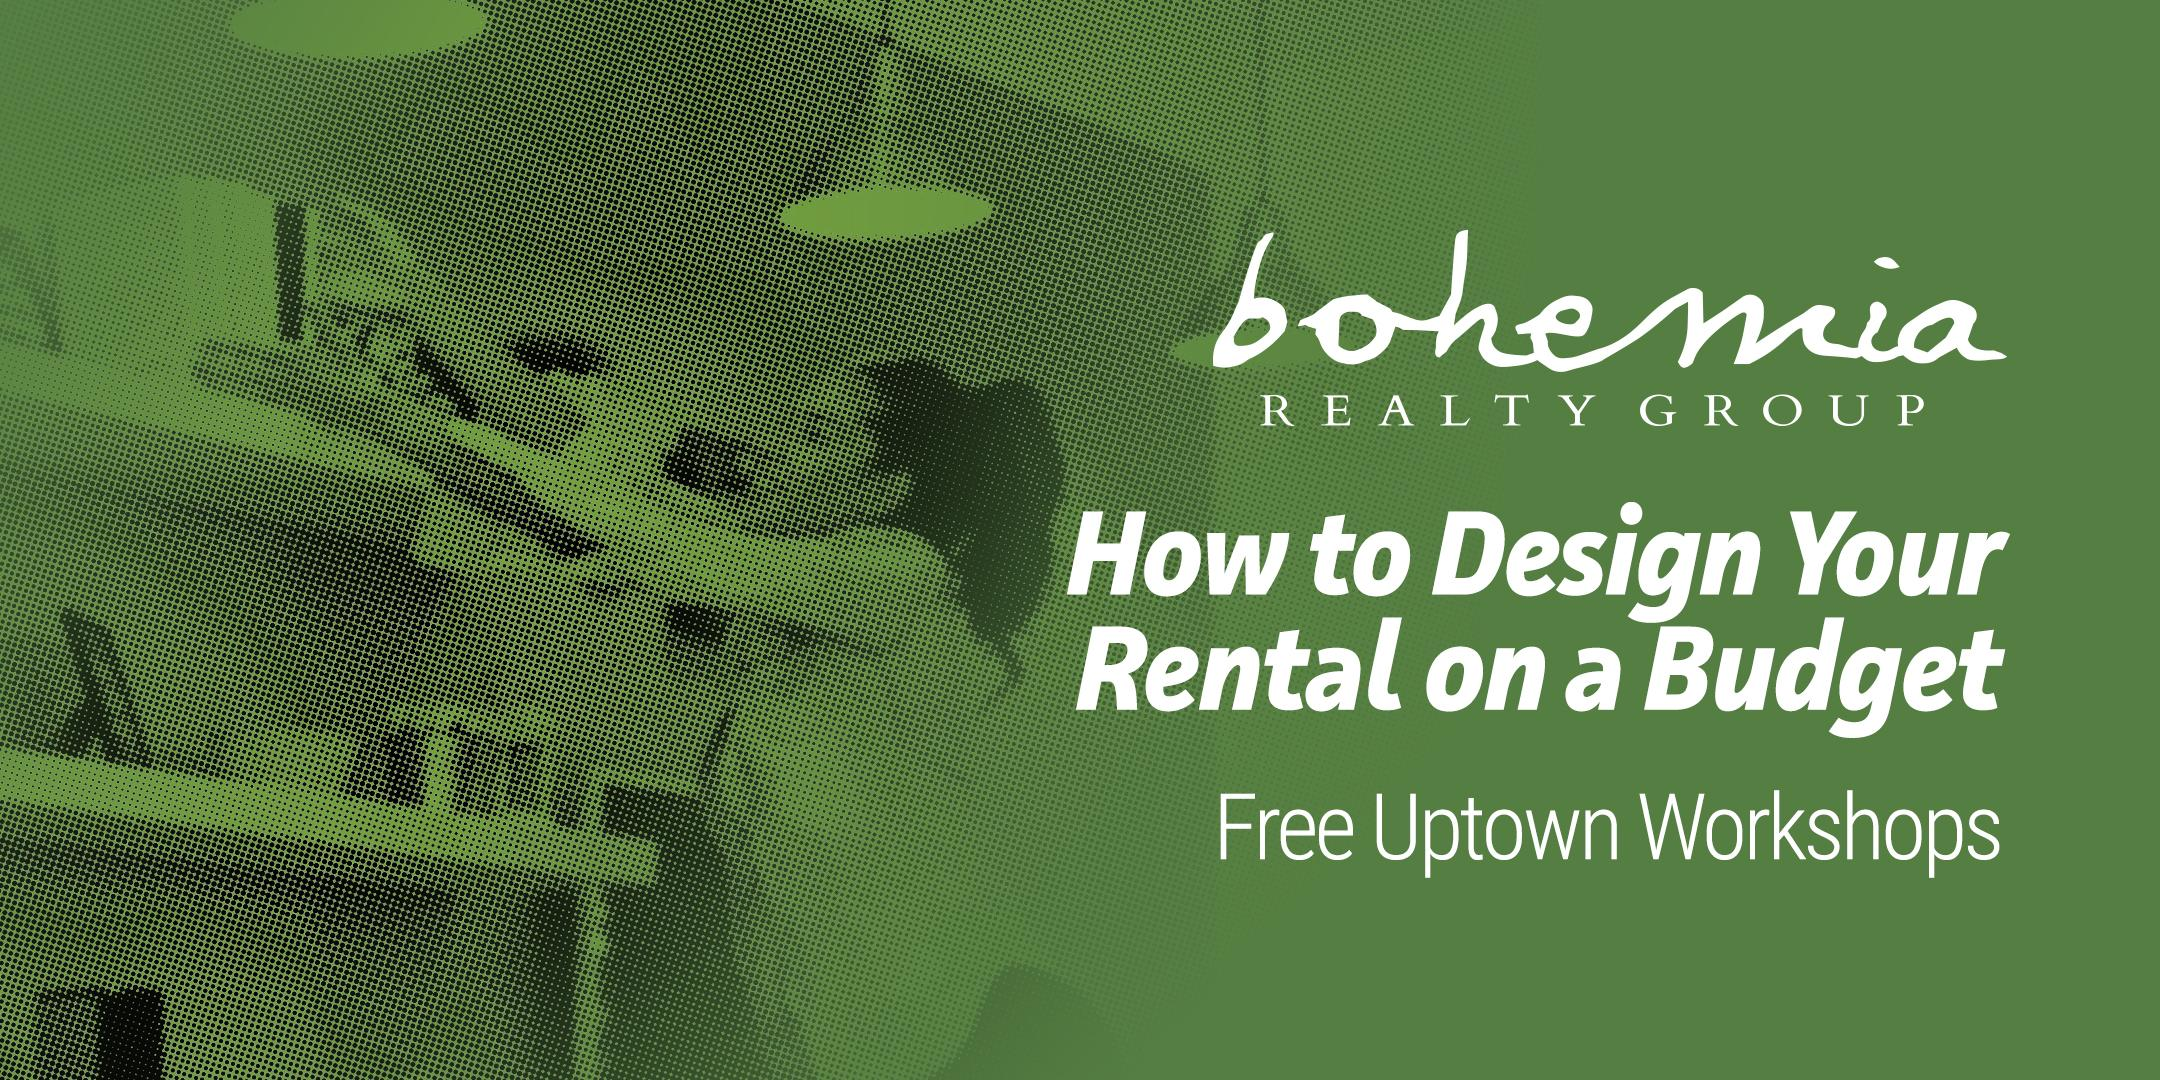 How to Design Your Rental on a Budget